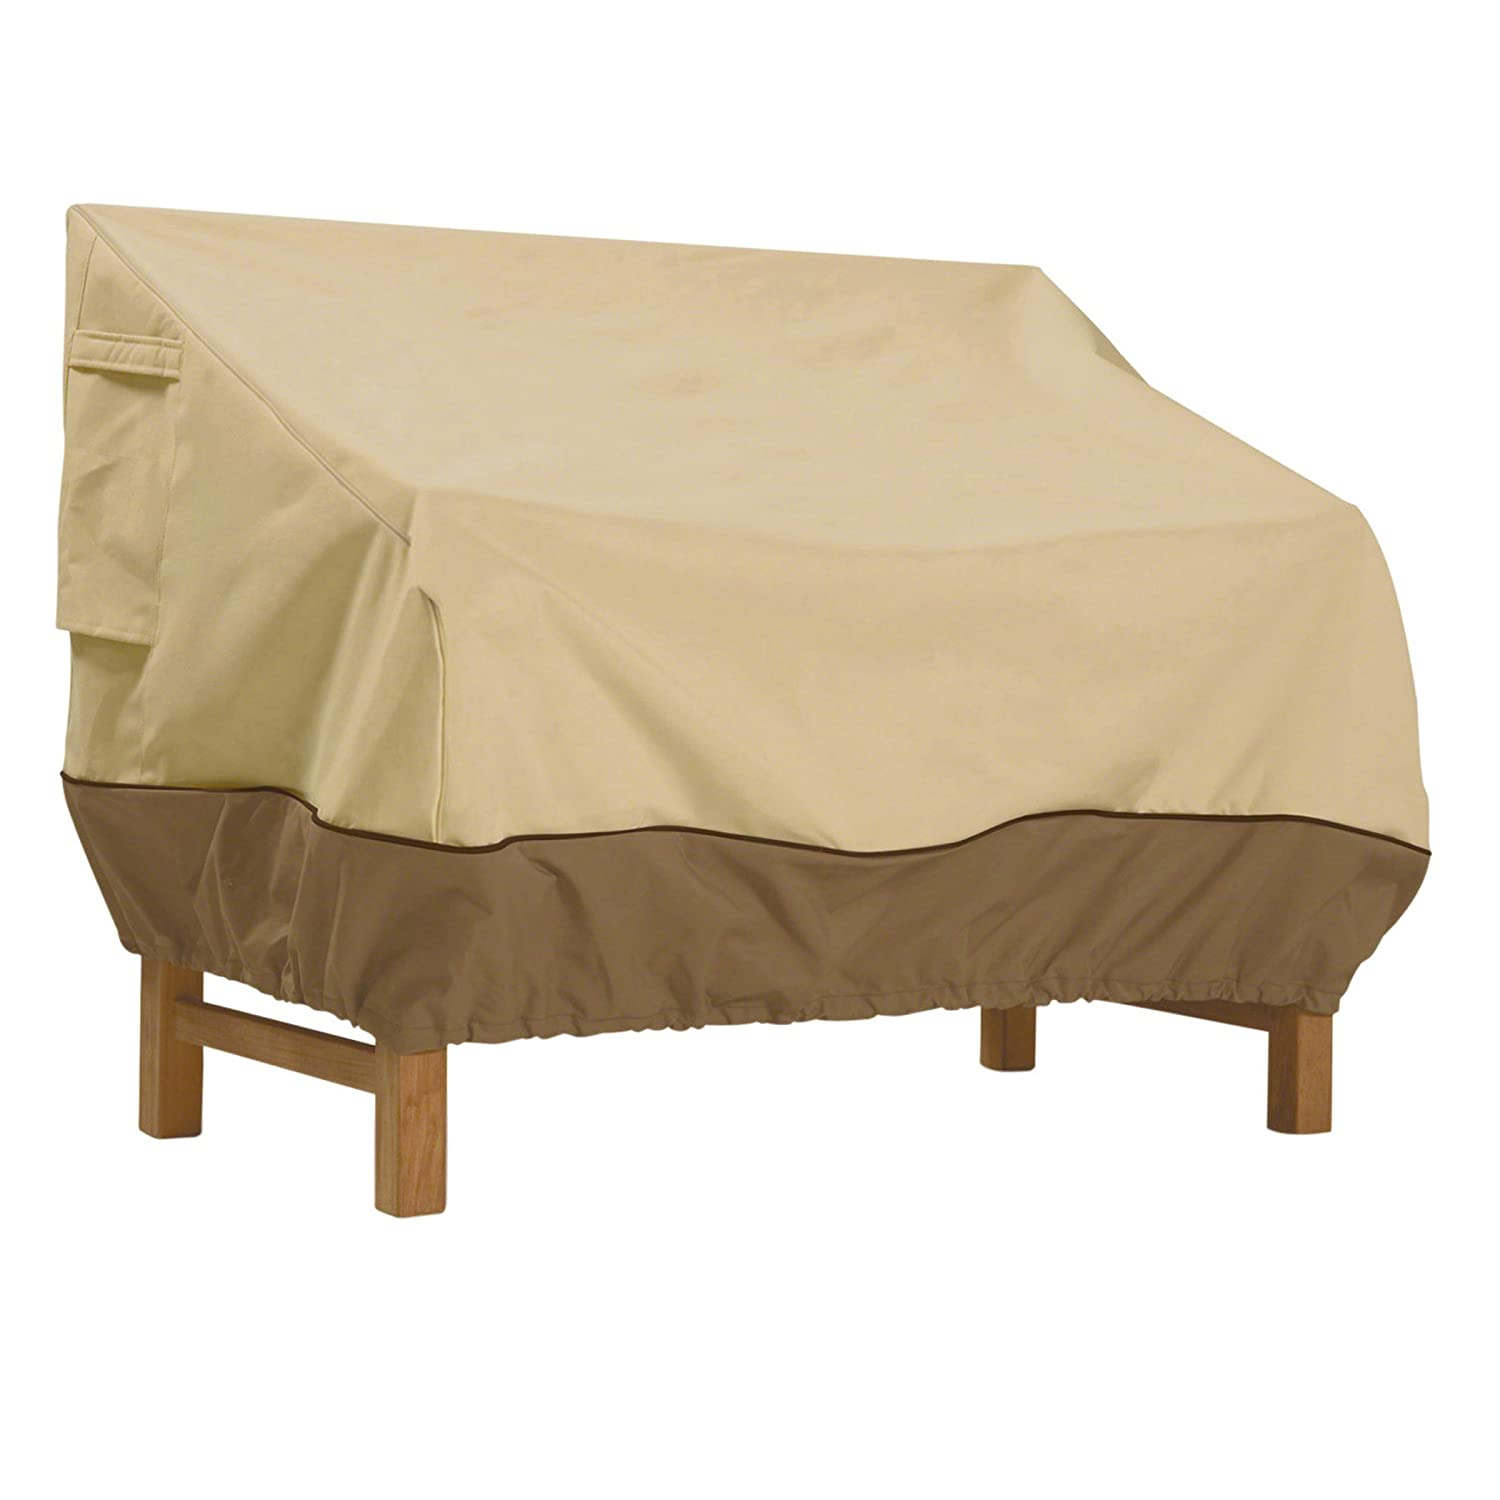 Classic Accessories Veranda Loveseat Cover For Hampton Bay Spring Haven Wicker Patio Loveseats